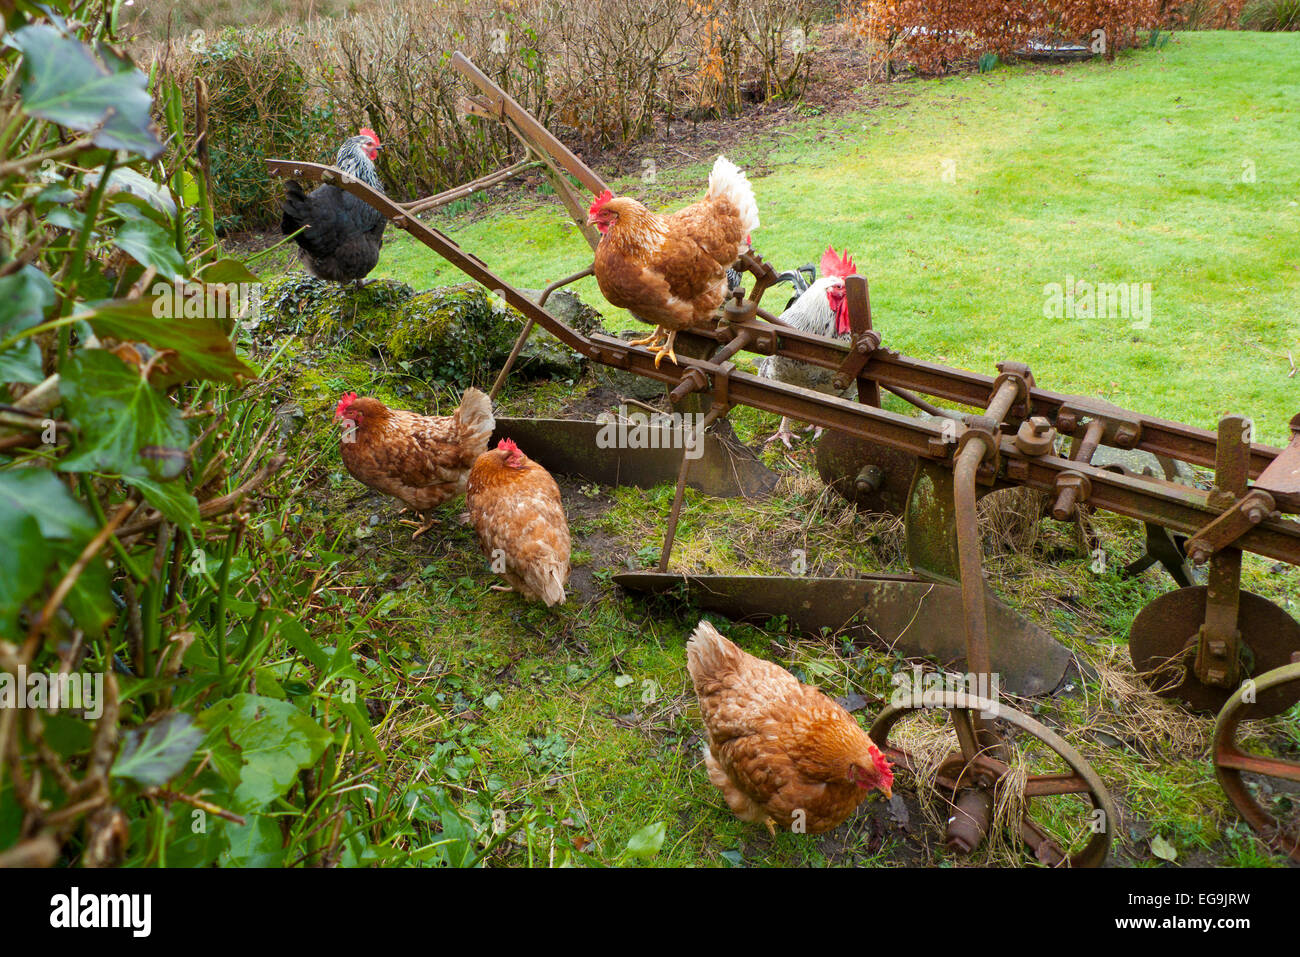 Free range chickens hens with cockerel rooster perch on an old rusty in a smallholding rural garden in Carmarthenshire, - Stock Image